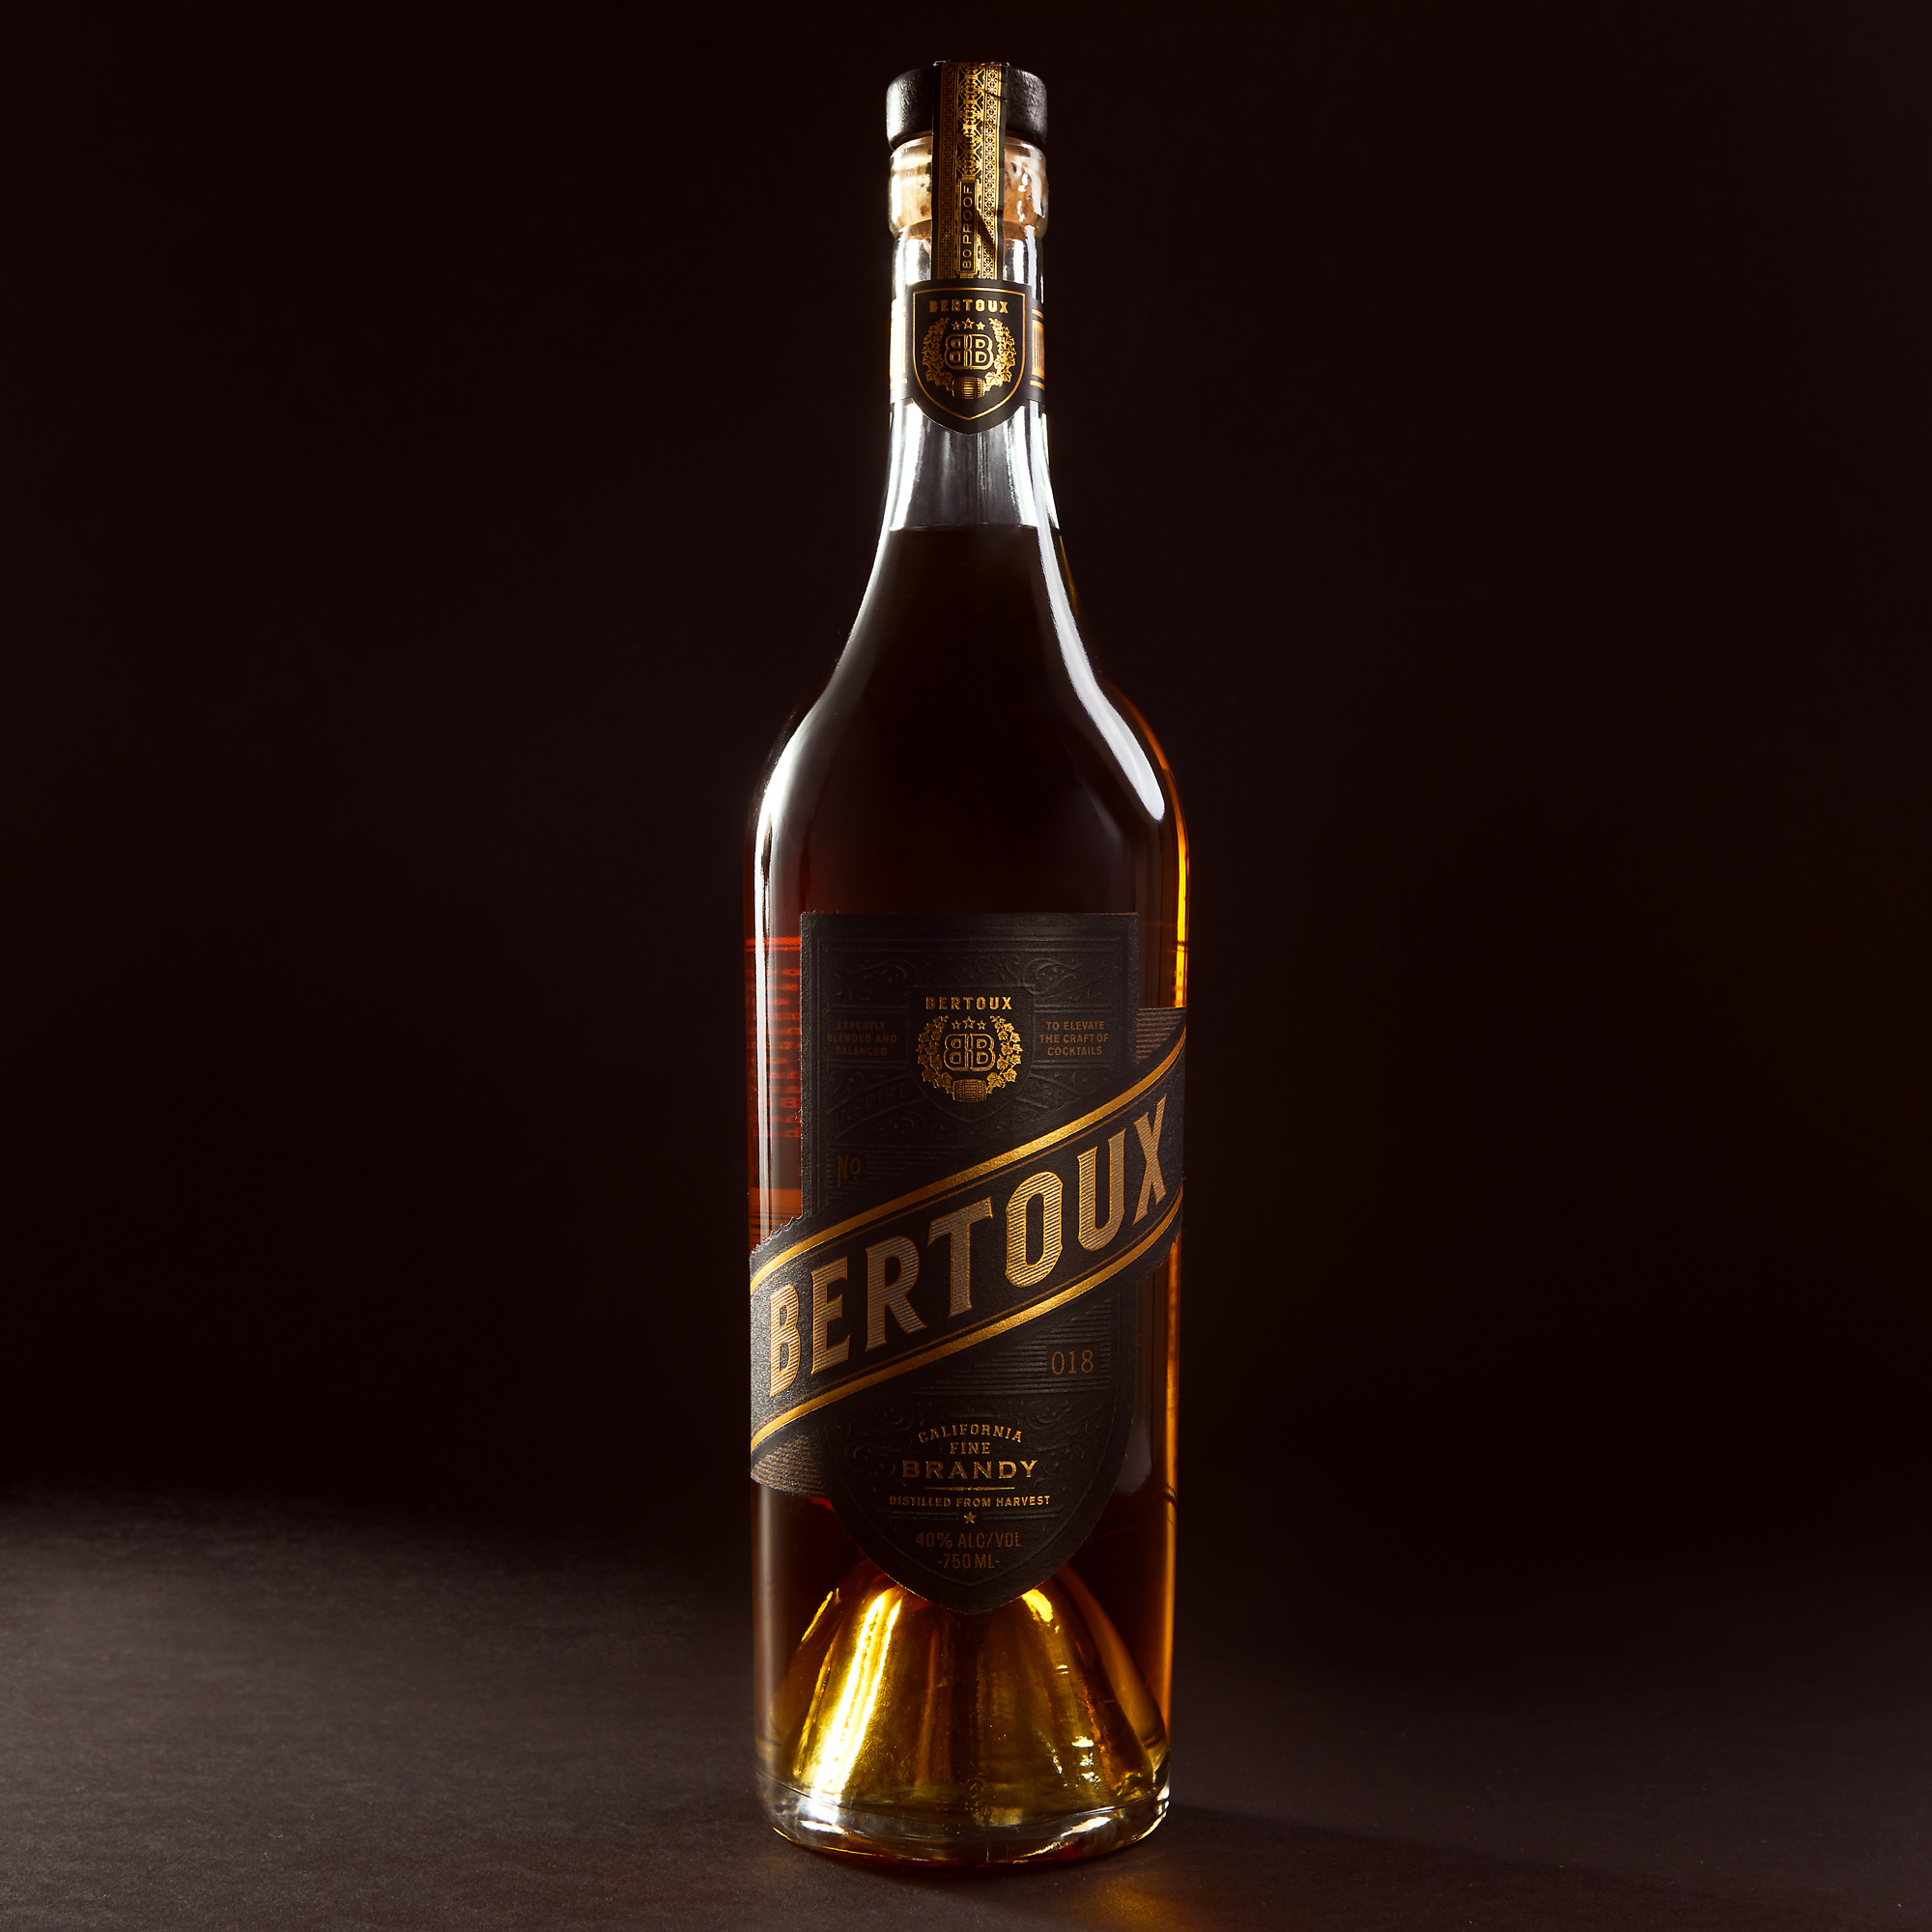 brandy-bottle-photography-bertoux-brandy